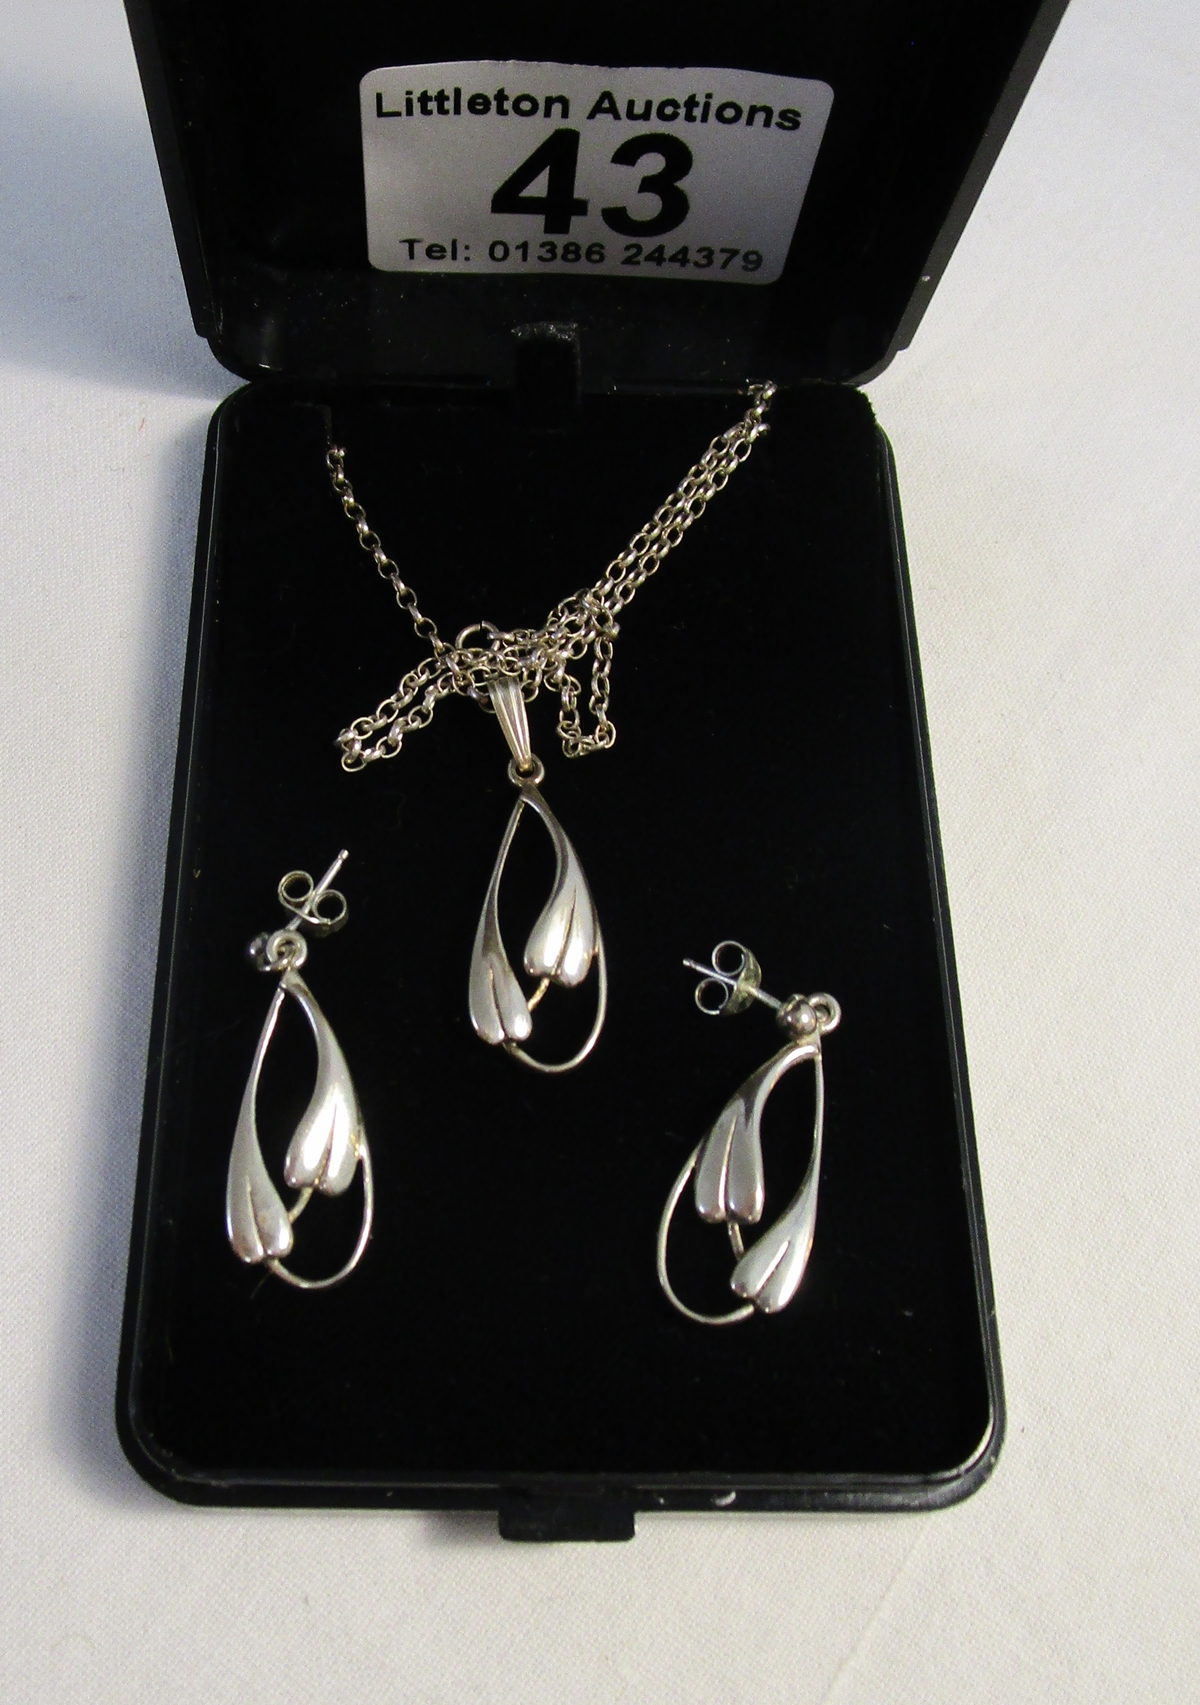 Lot 43 - Silver set of Nouveau style earrings and pendant